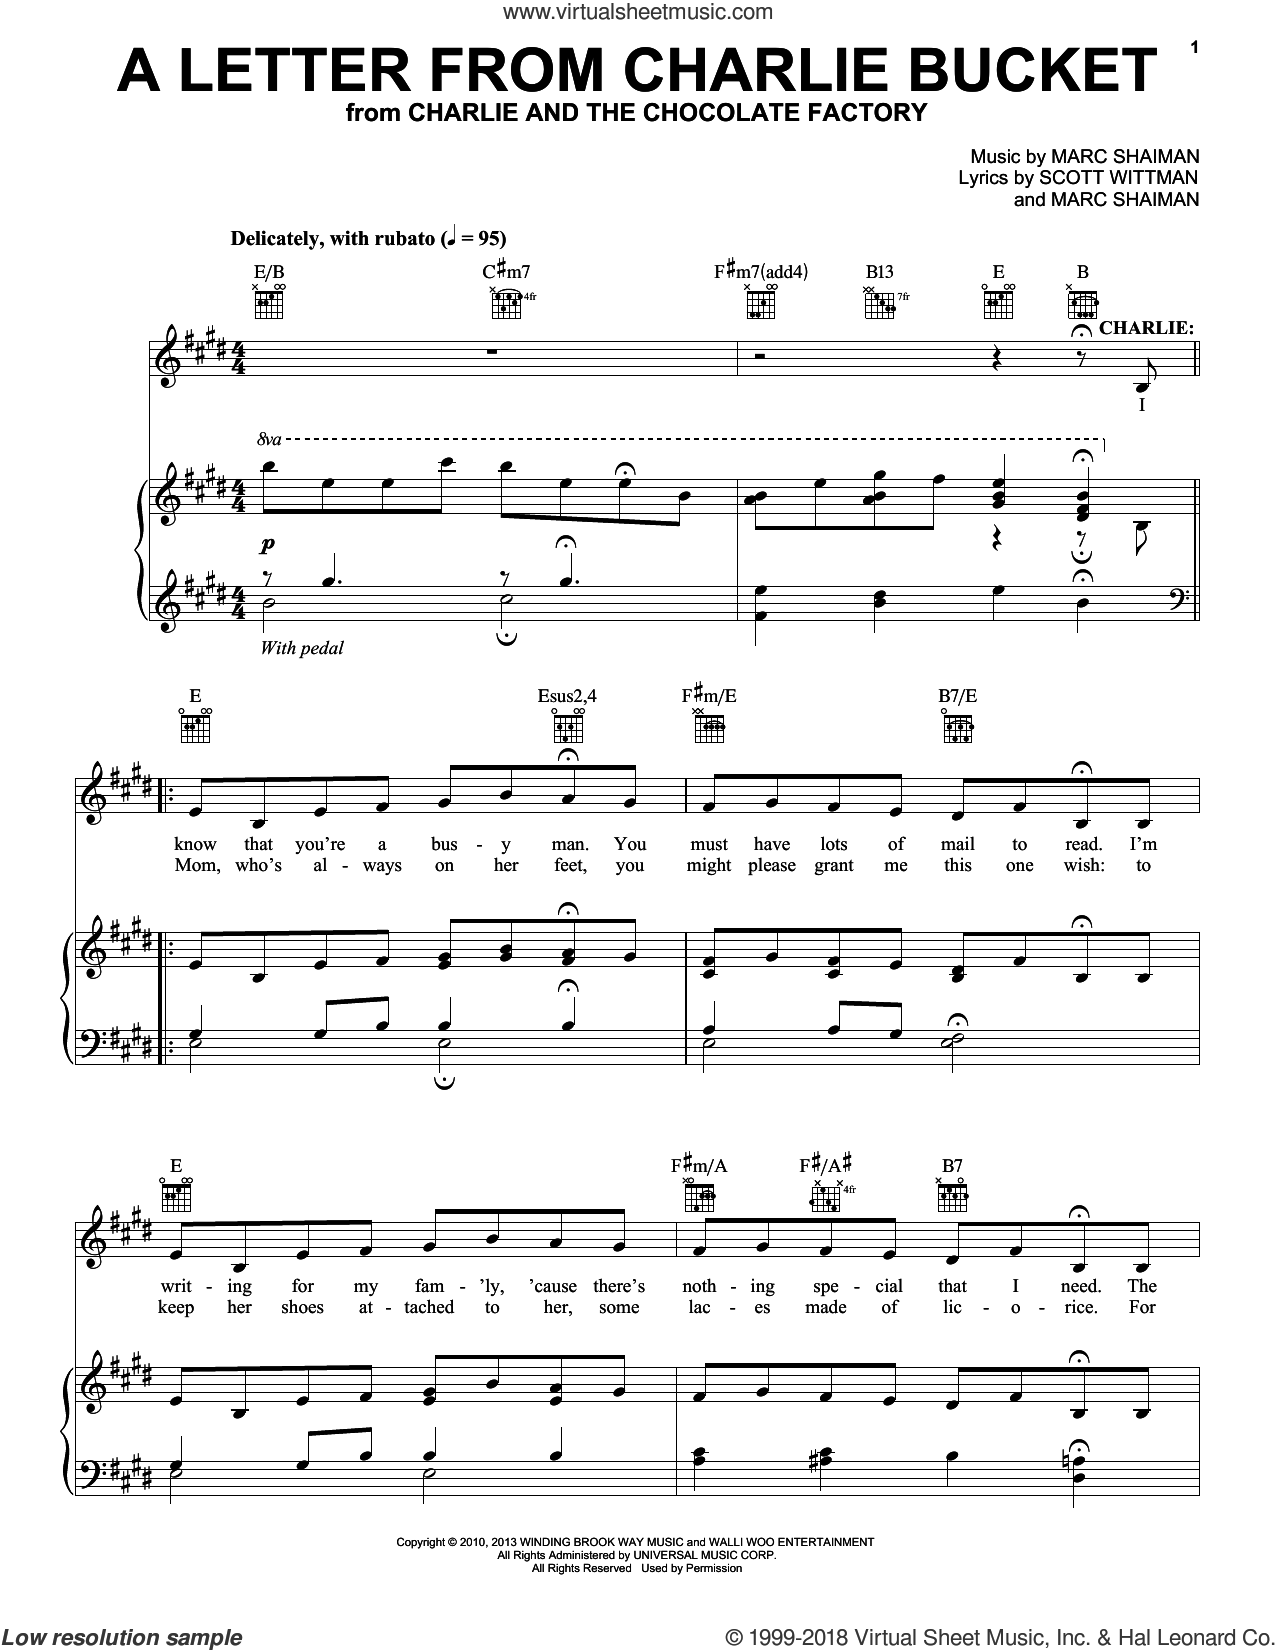 A Letter From Charlie Bucket sheet music for voice and piano by Marc Shaiman, Roald Dahl and Scott Wittman, intermediate skill level